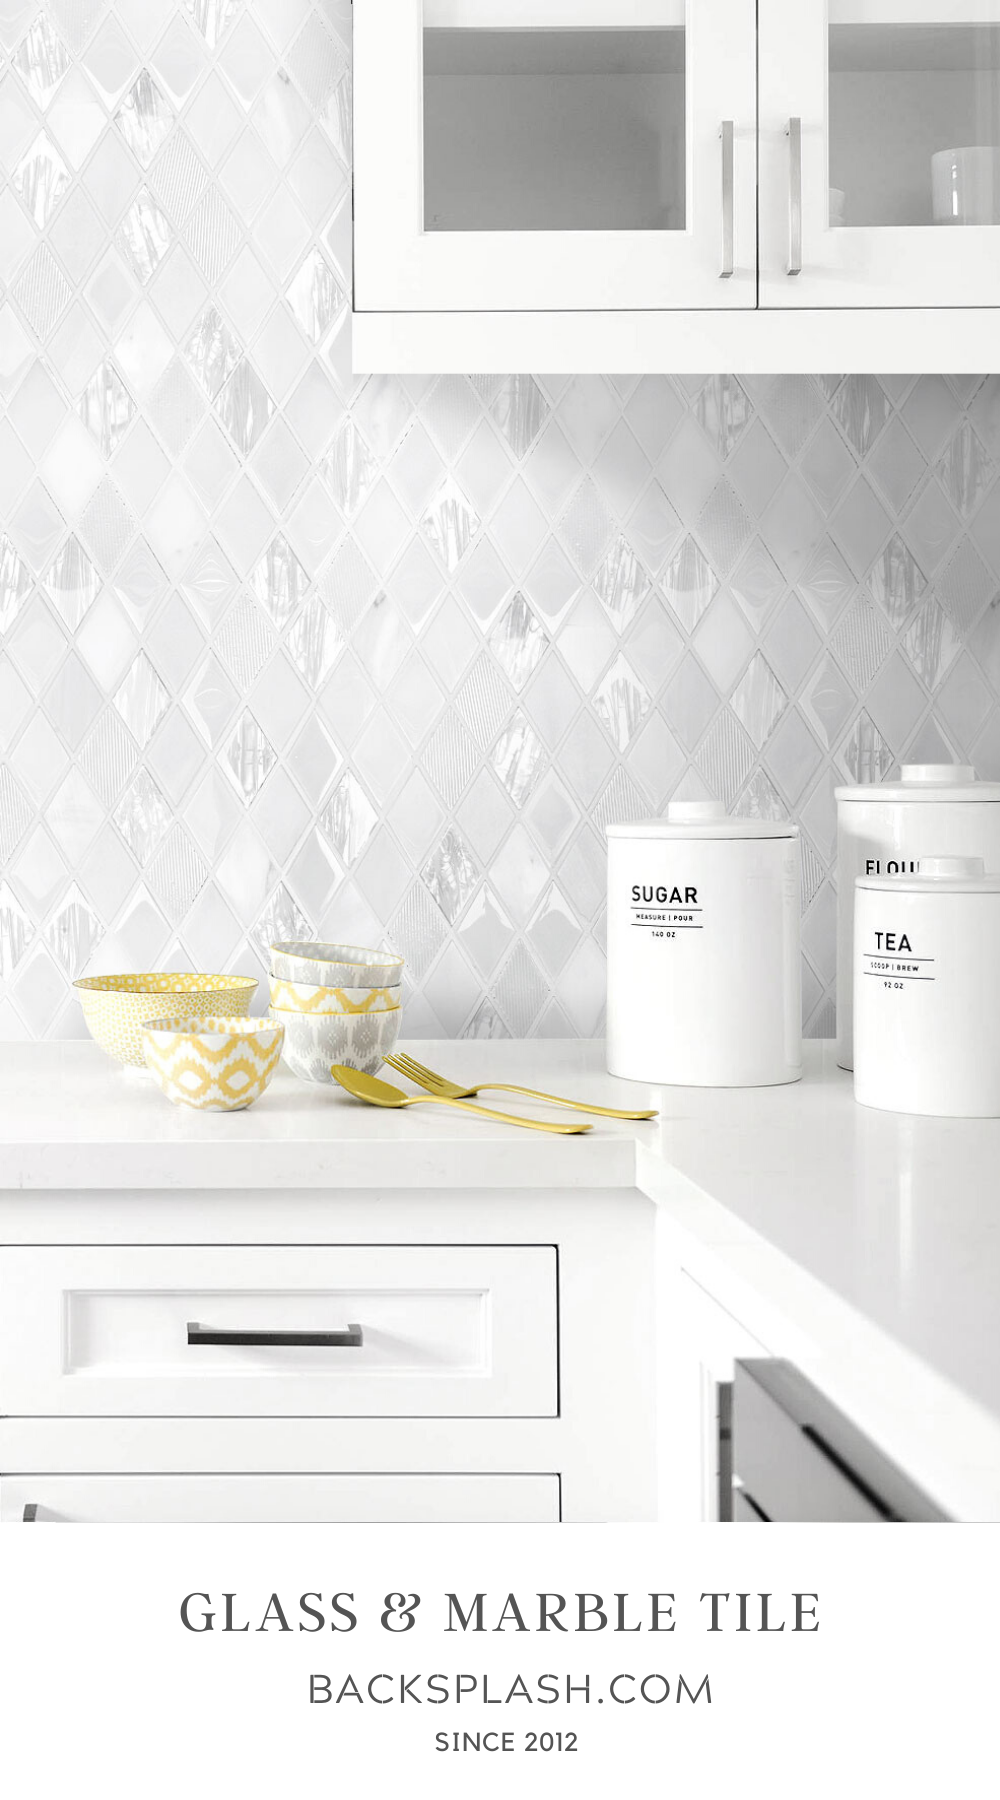 - Elegant White Rhomboid Backsplash Tile Backsplash.com In 2020